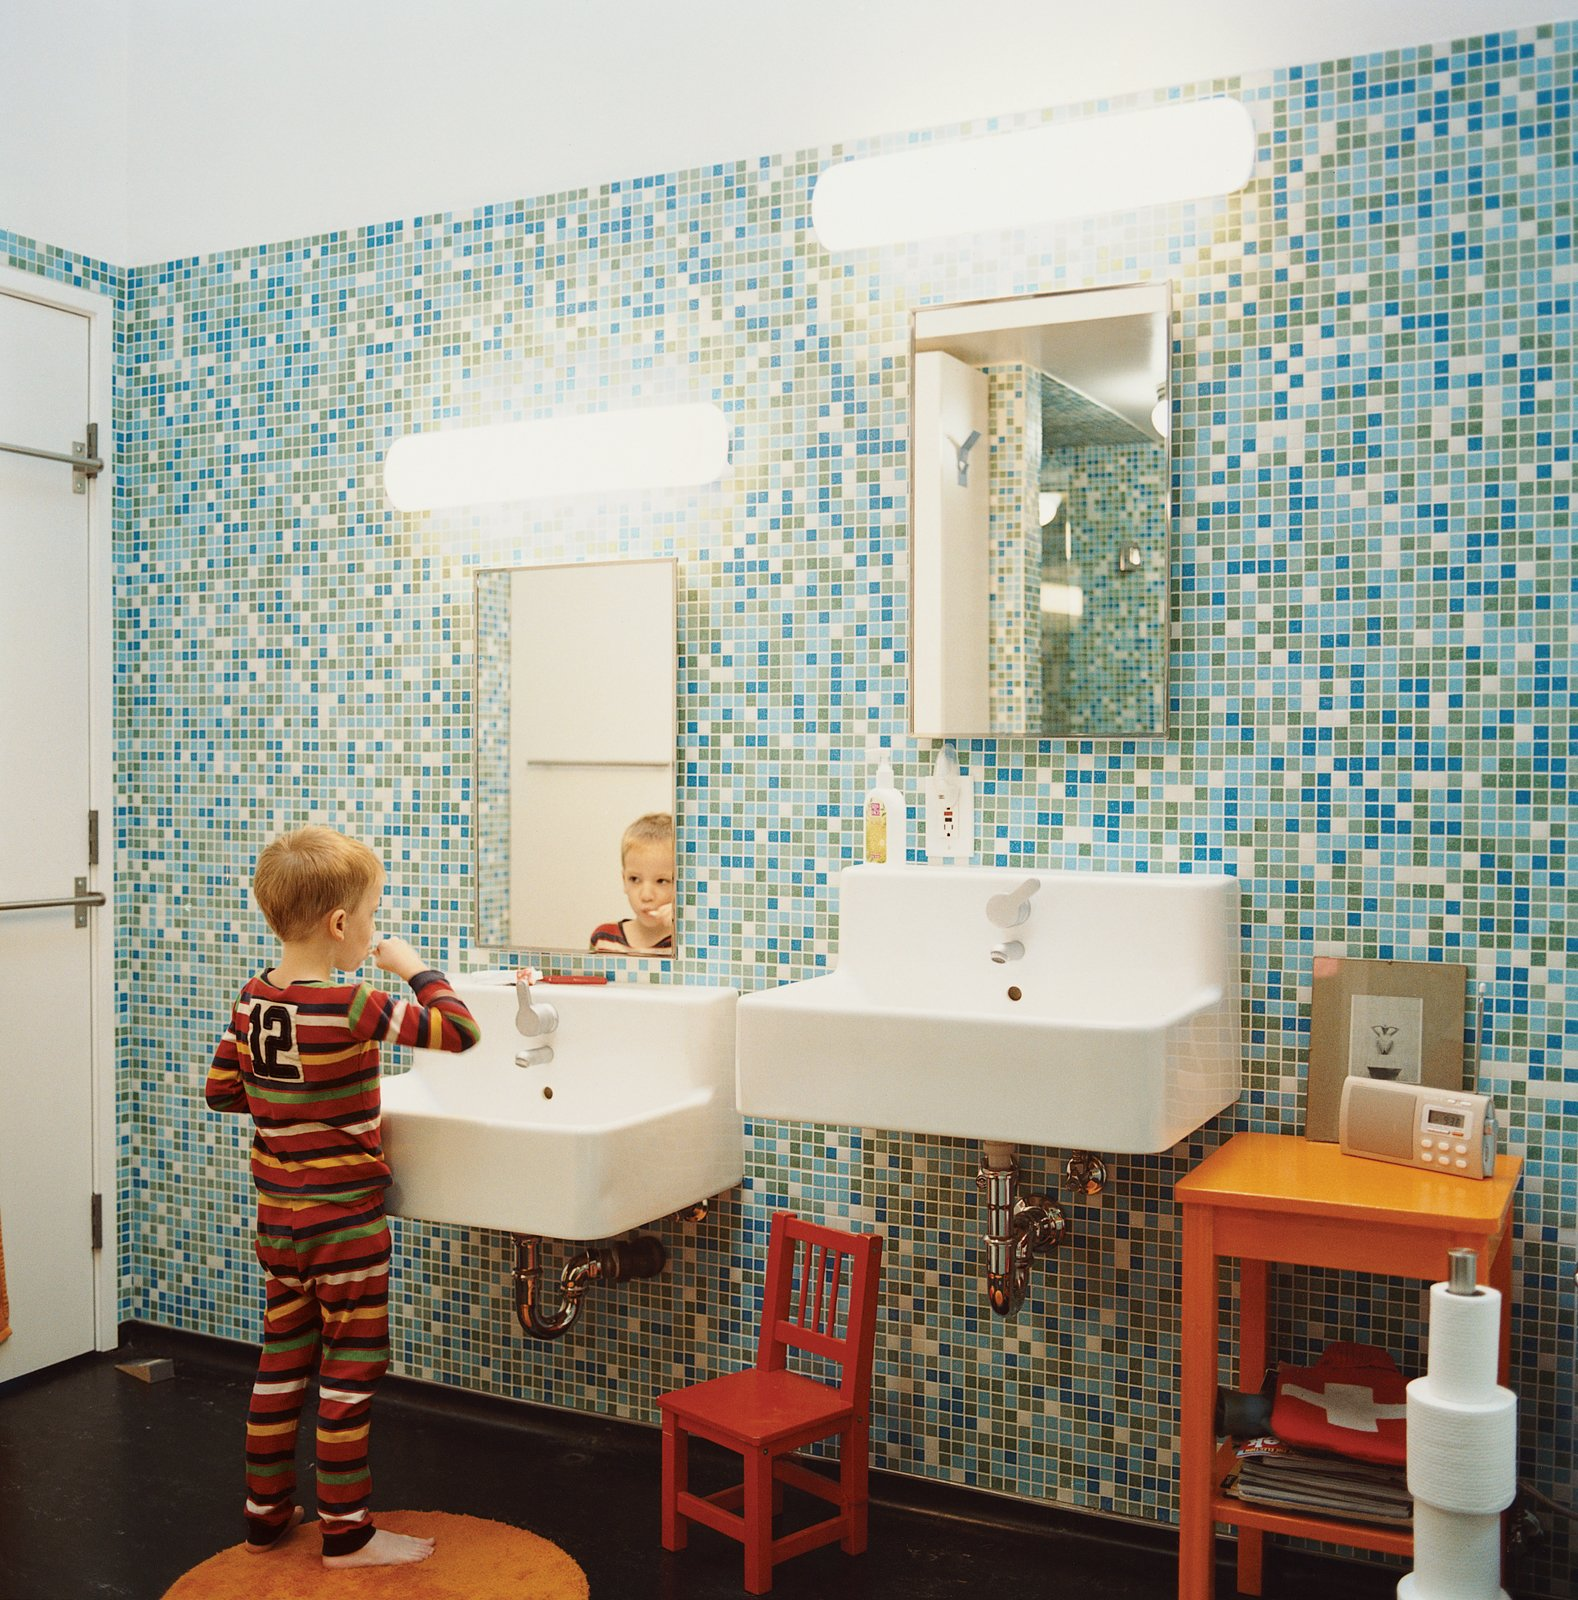 Bath Room, Wall Mount Sink, and Ceramic Tile Wall In the tiled master bathroom, the boys get their own sink.  50+ Modern Tile Ideas for Walls, Floors and Ceilings by William Lamb from Sun Mun Way Cool